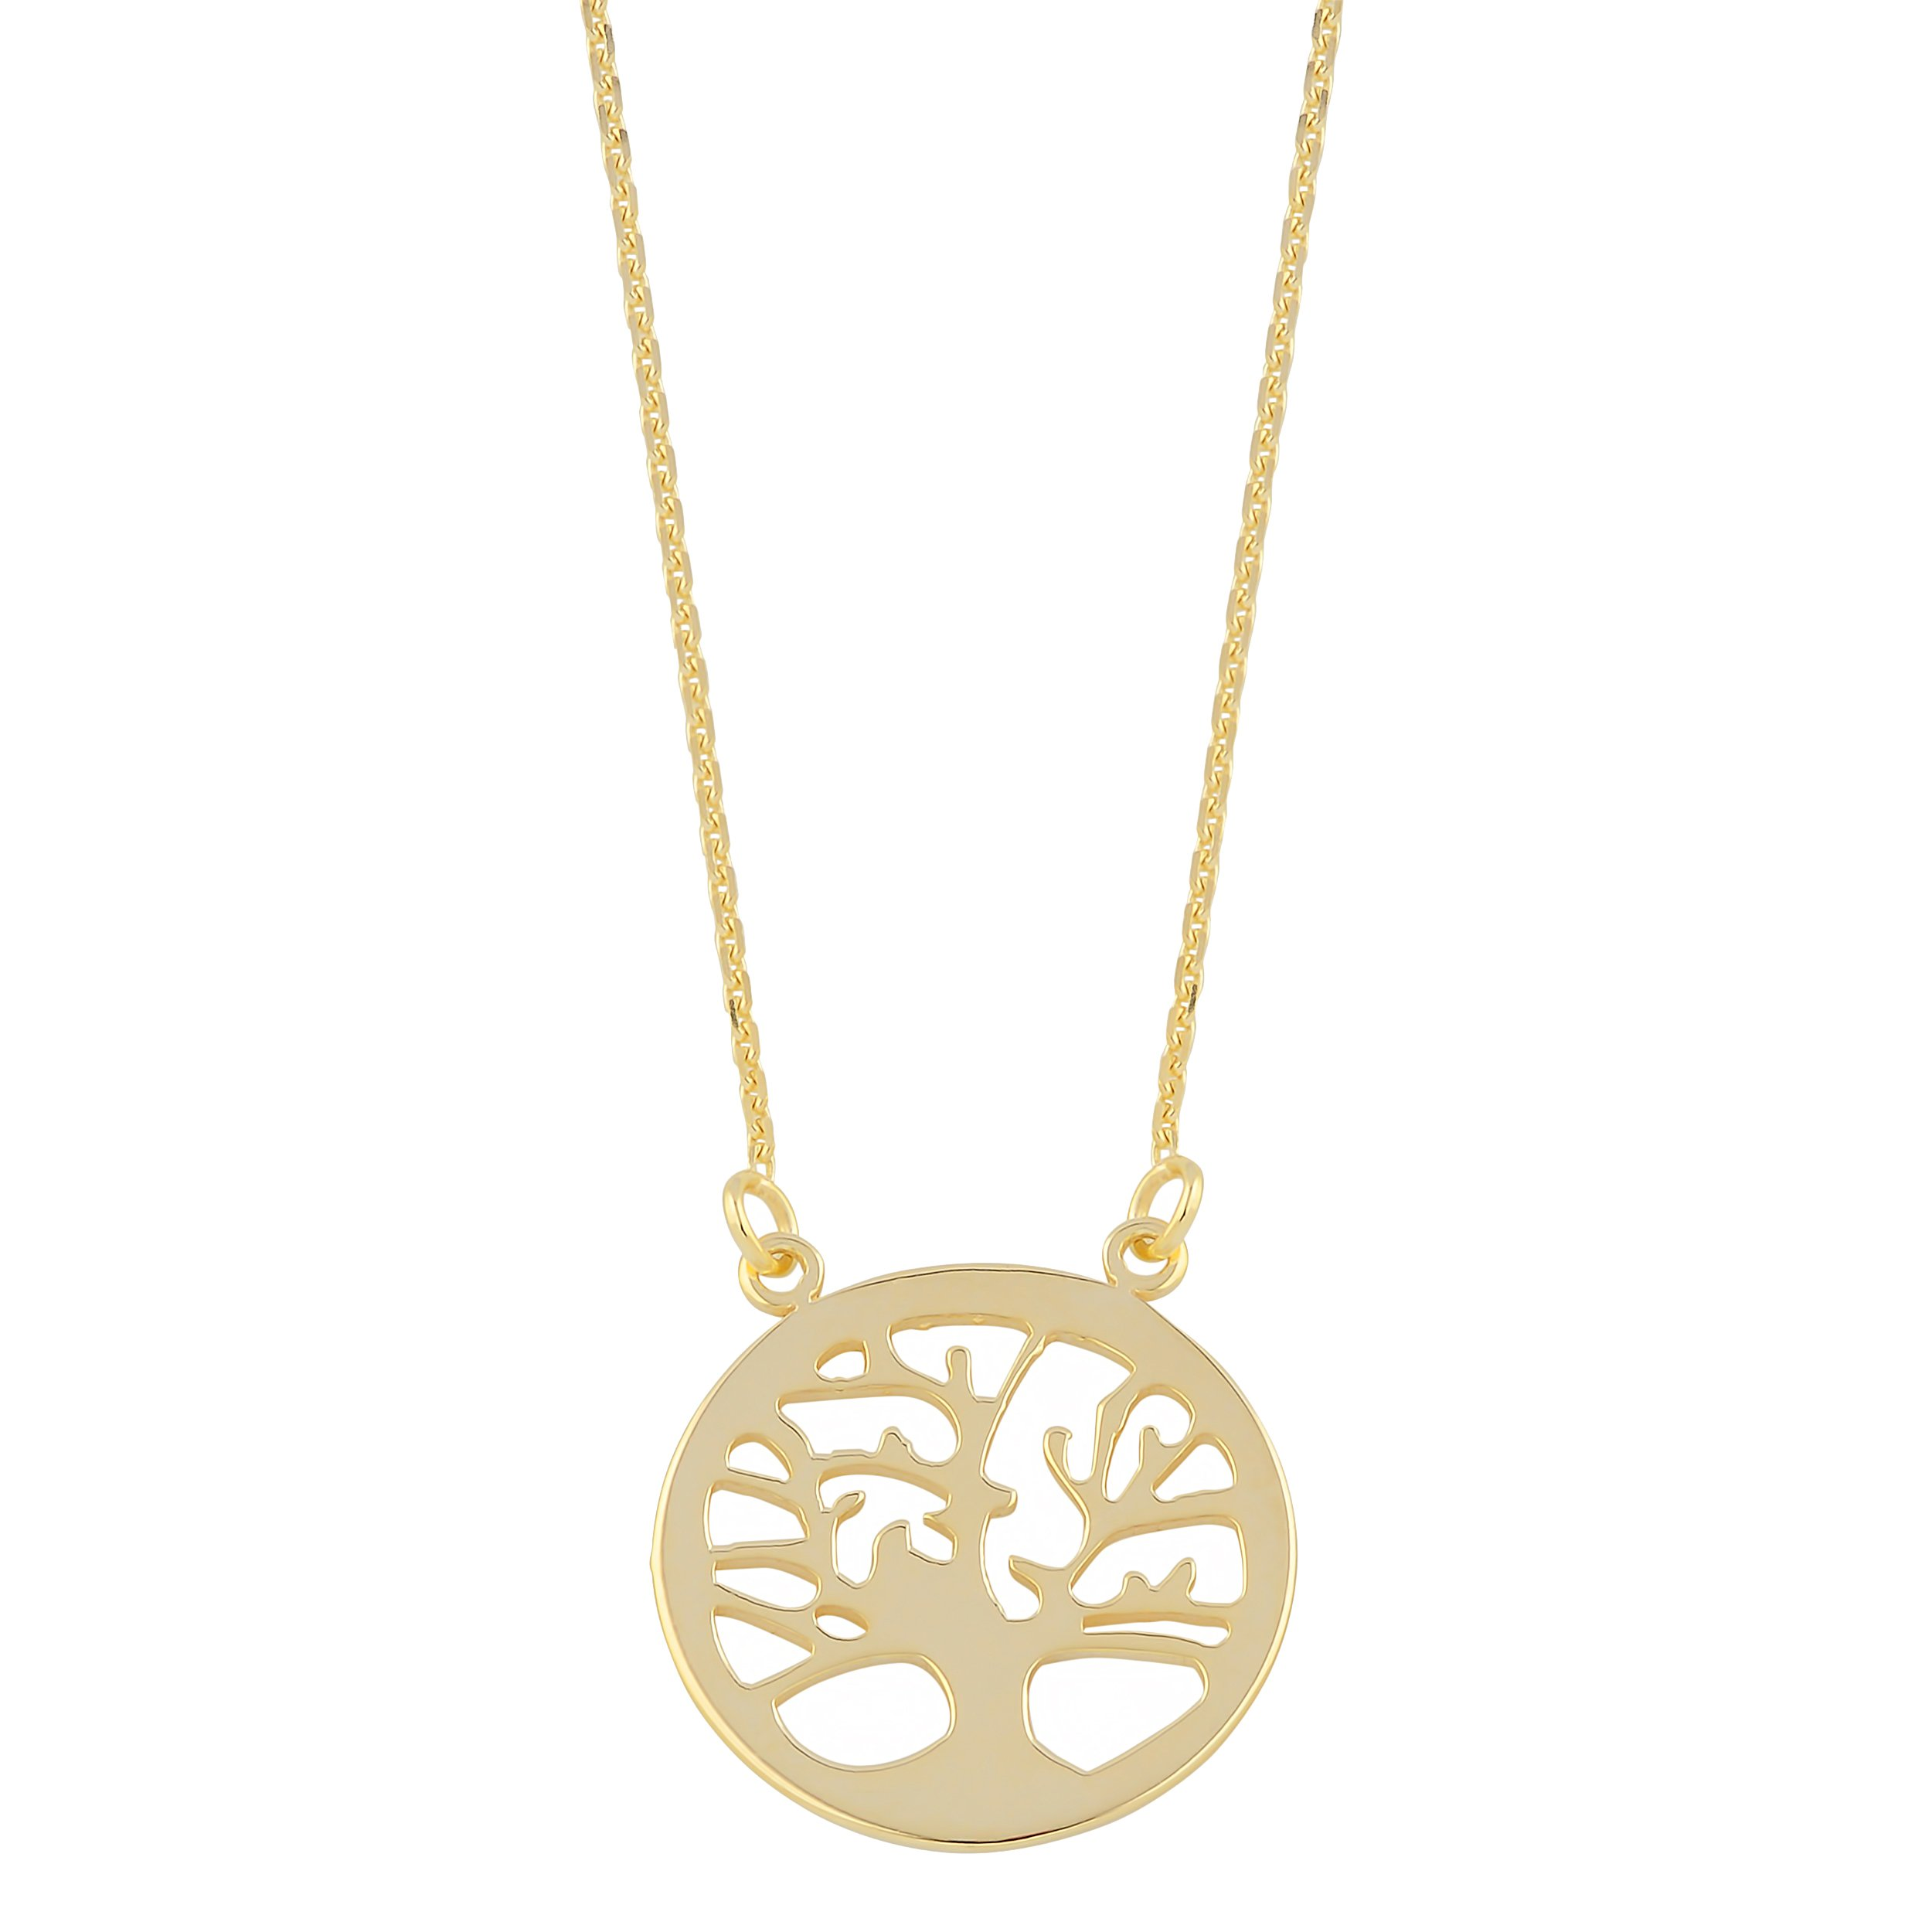 10k Yellow Gold Sideways Tree Of Life Adjustable Length Necklace (from 16'' to 18'') by Kooljewelry (Image #1)